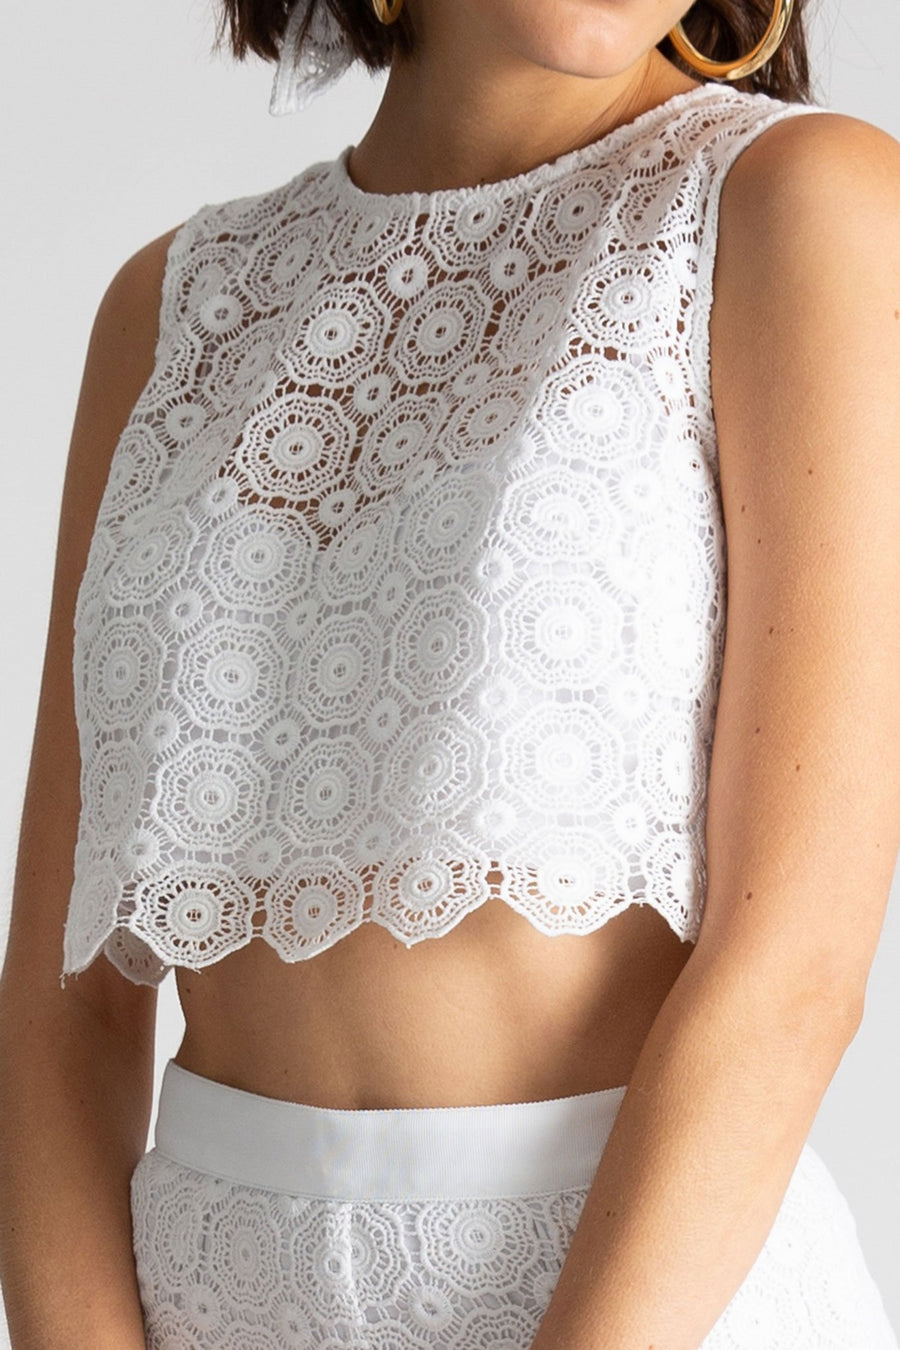 This is a detail photo of an all white lace crop top with white jersey lining and geometric inspired flowers.